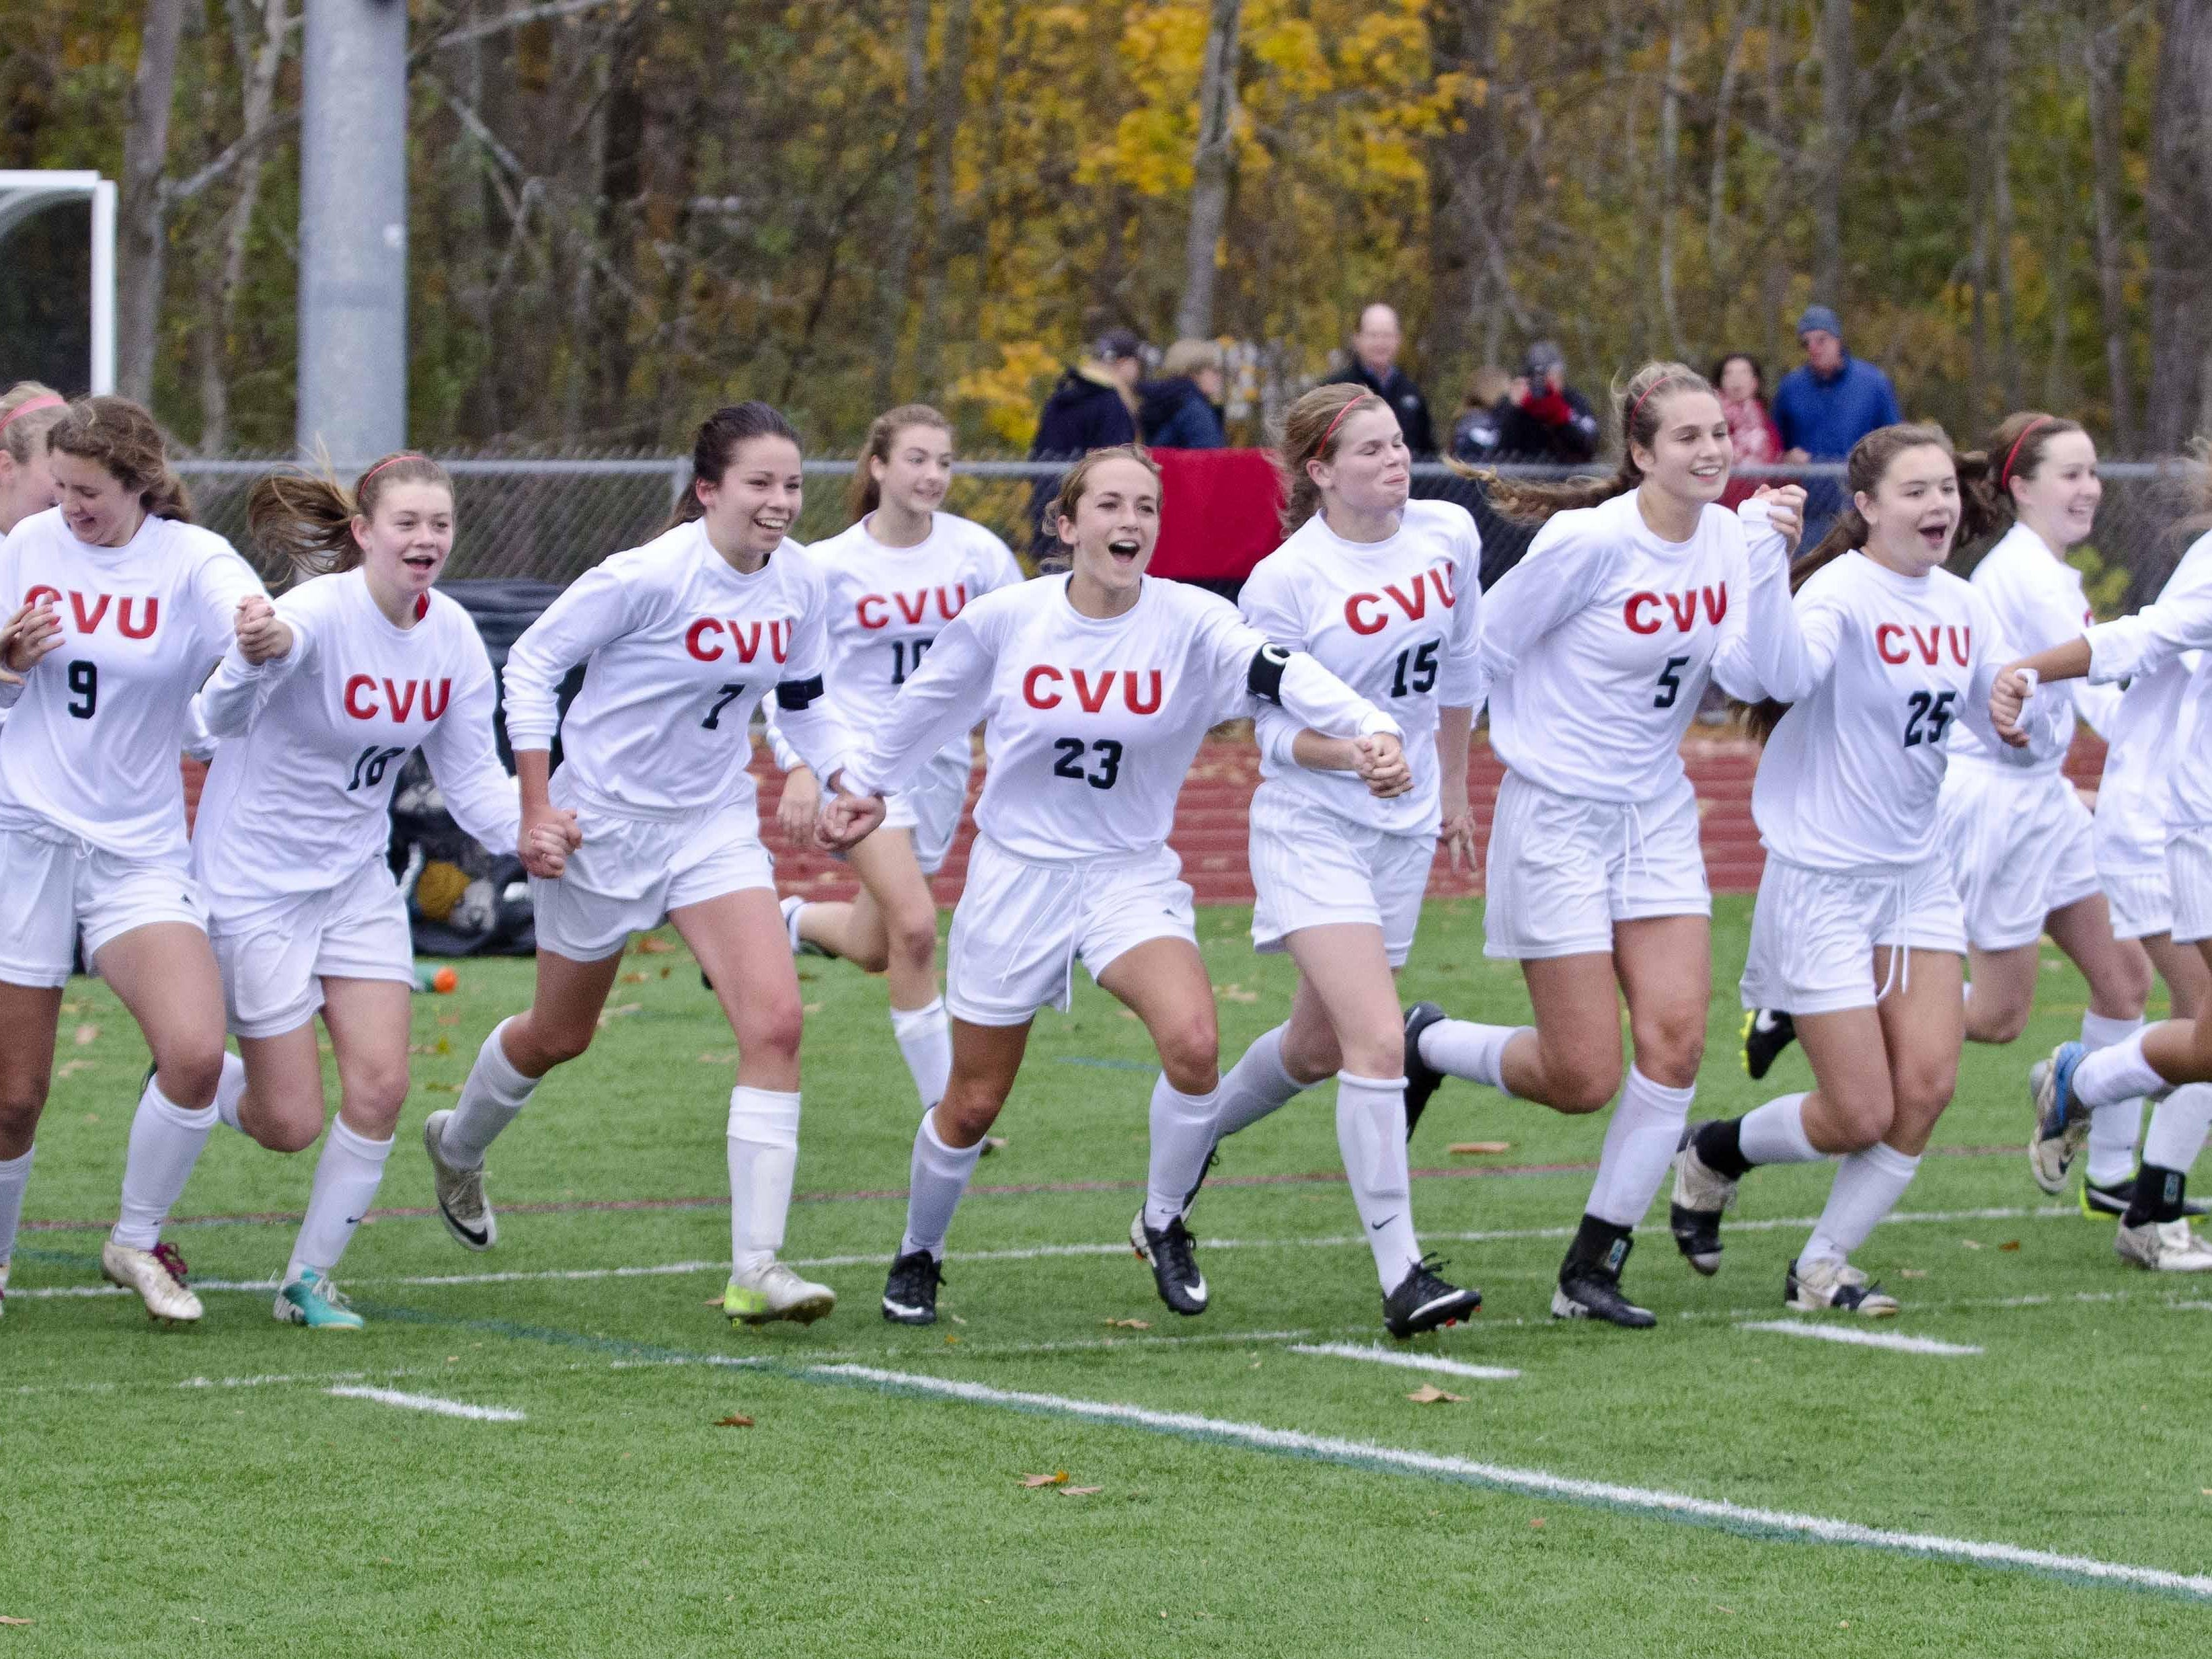 CVU celebrates its victory over Essex in the Division 1 state high school soccer championships in Burlington on Nov. 2, 2013.